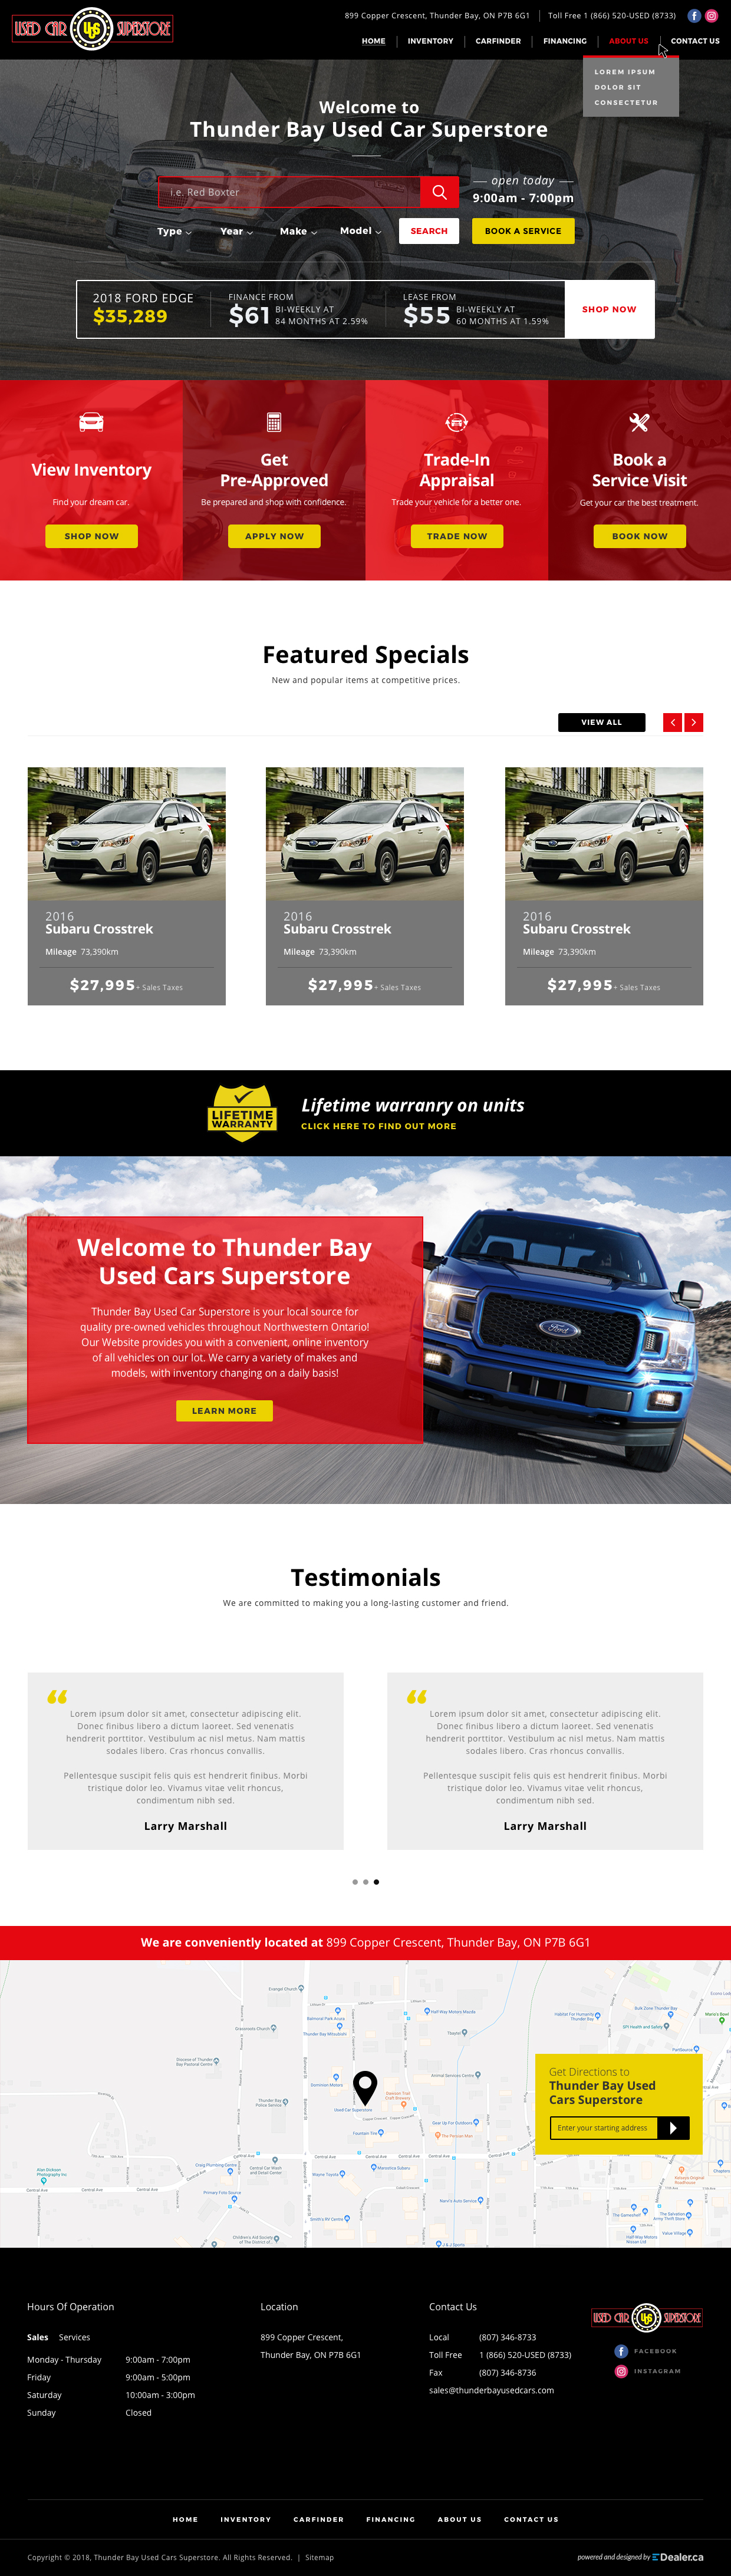 Thunder Bay Used Cars Superstore